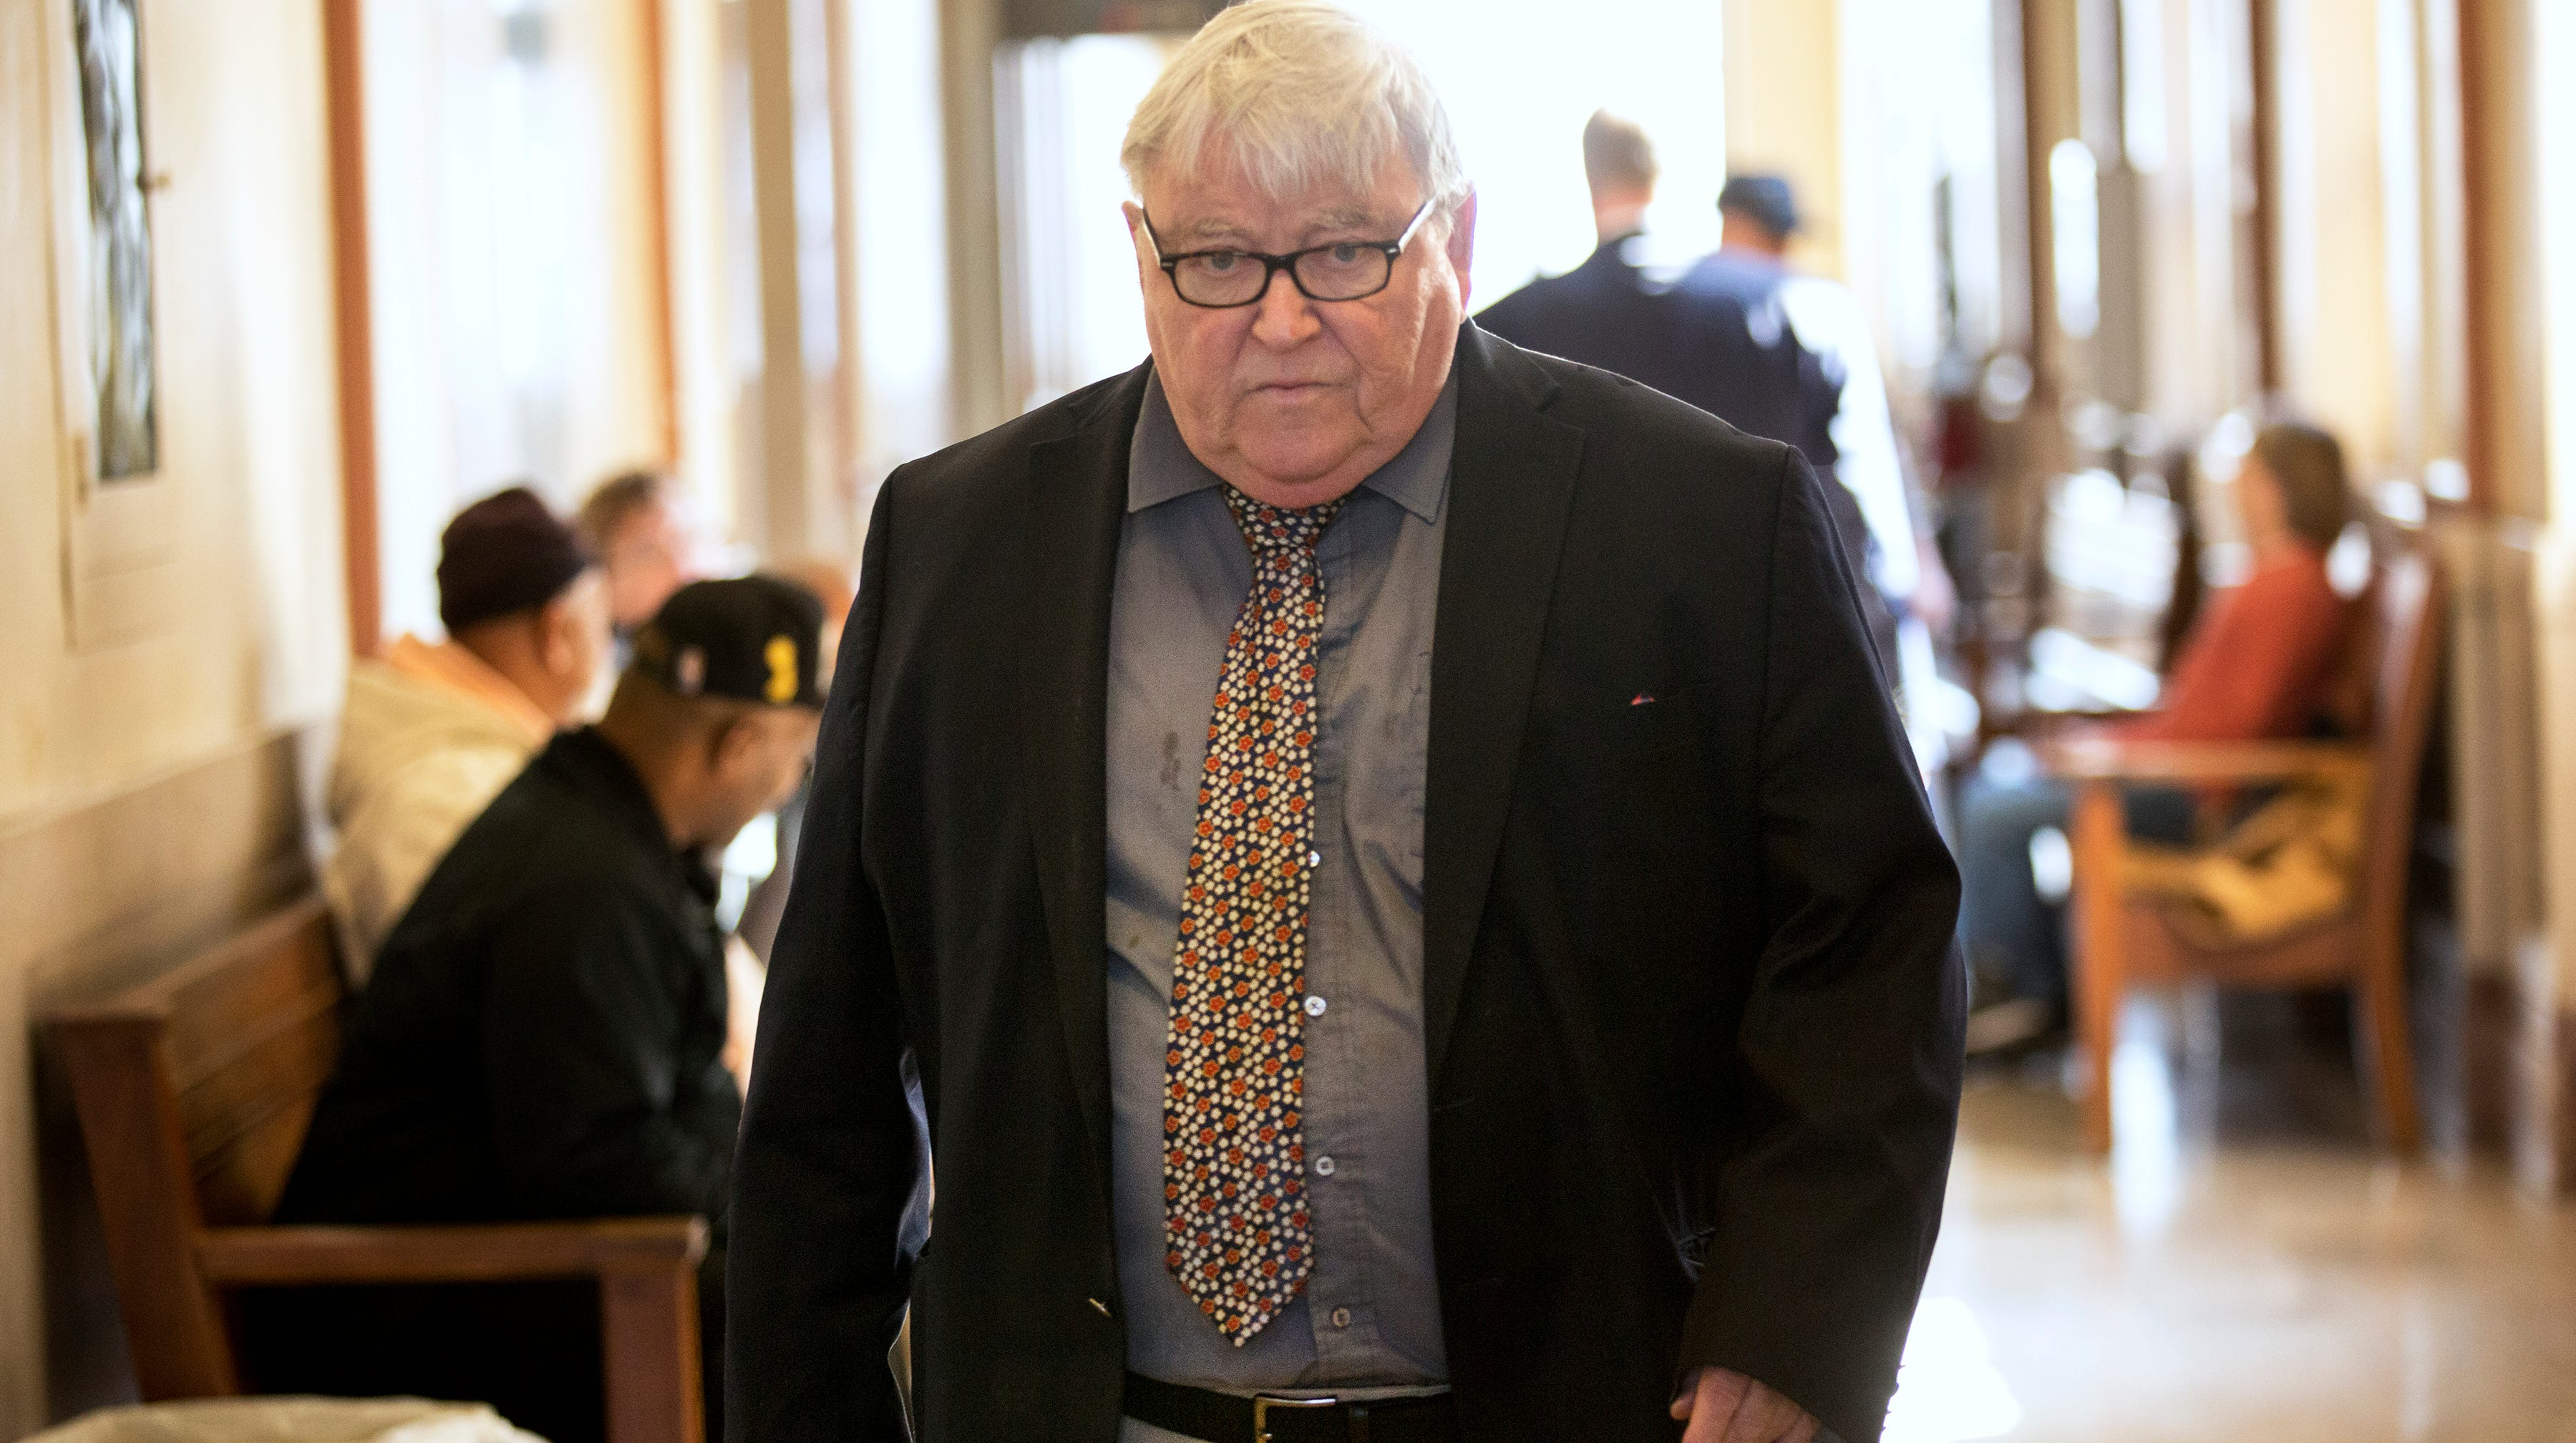 Local Portsmouth attorney, Michael Mearan, 73, in the hallways of the Scioto County Courthouse, in Portsmouth, Ohio.